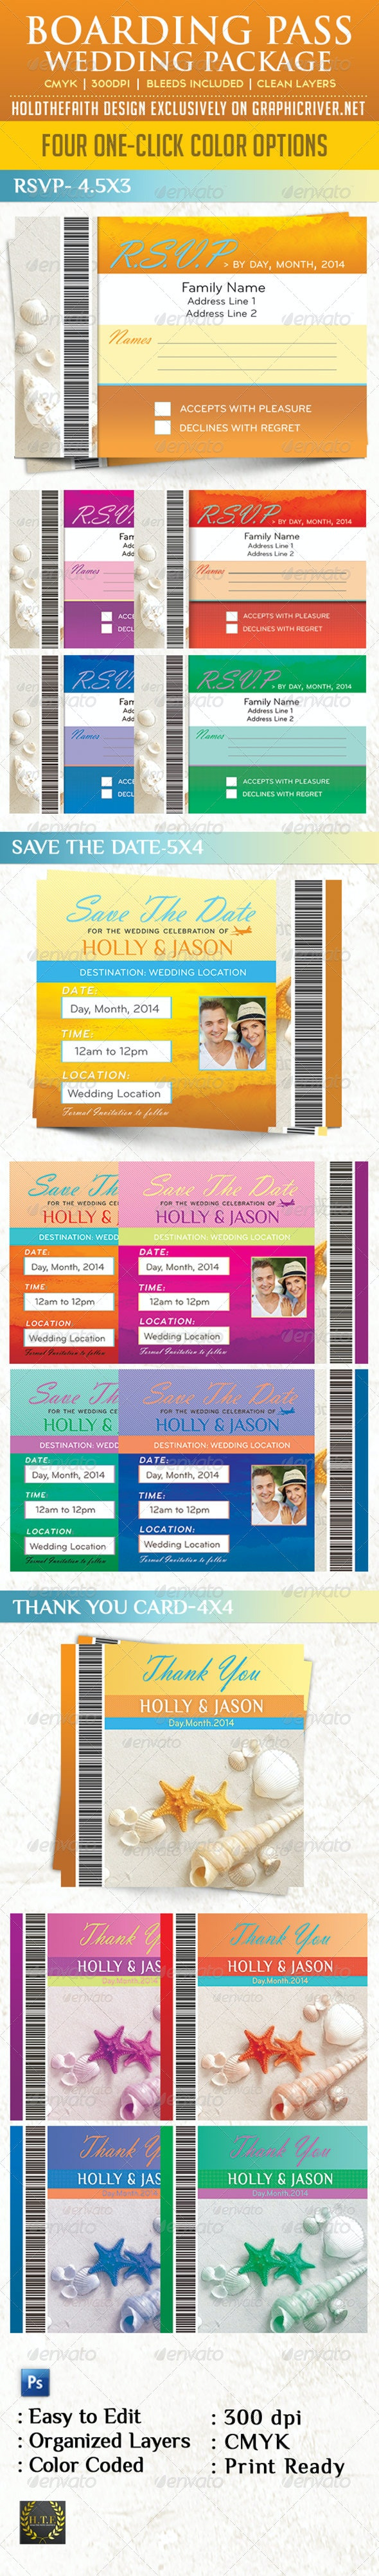 Boarding Pass Wedding Package - Weddings Cards & Invites